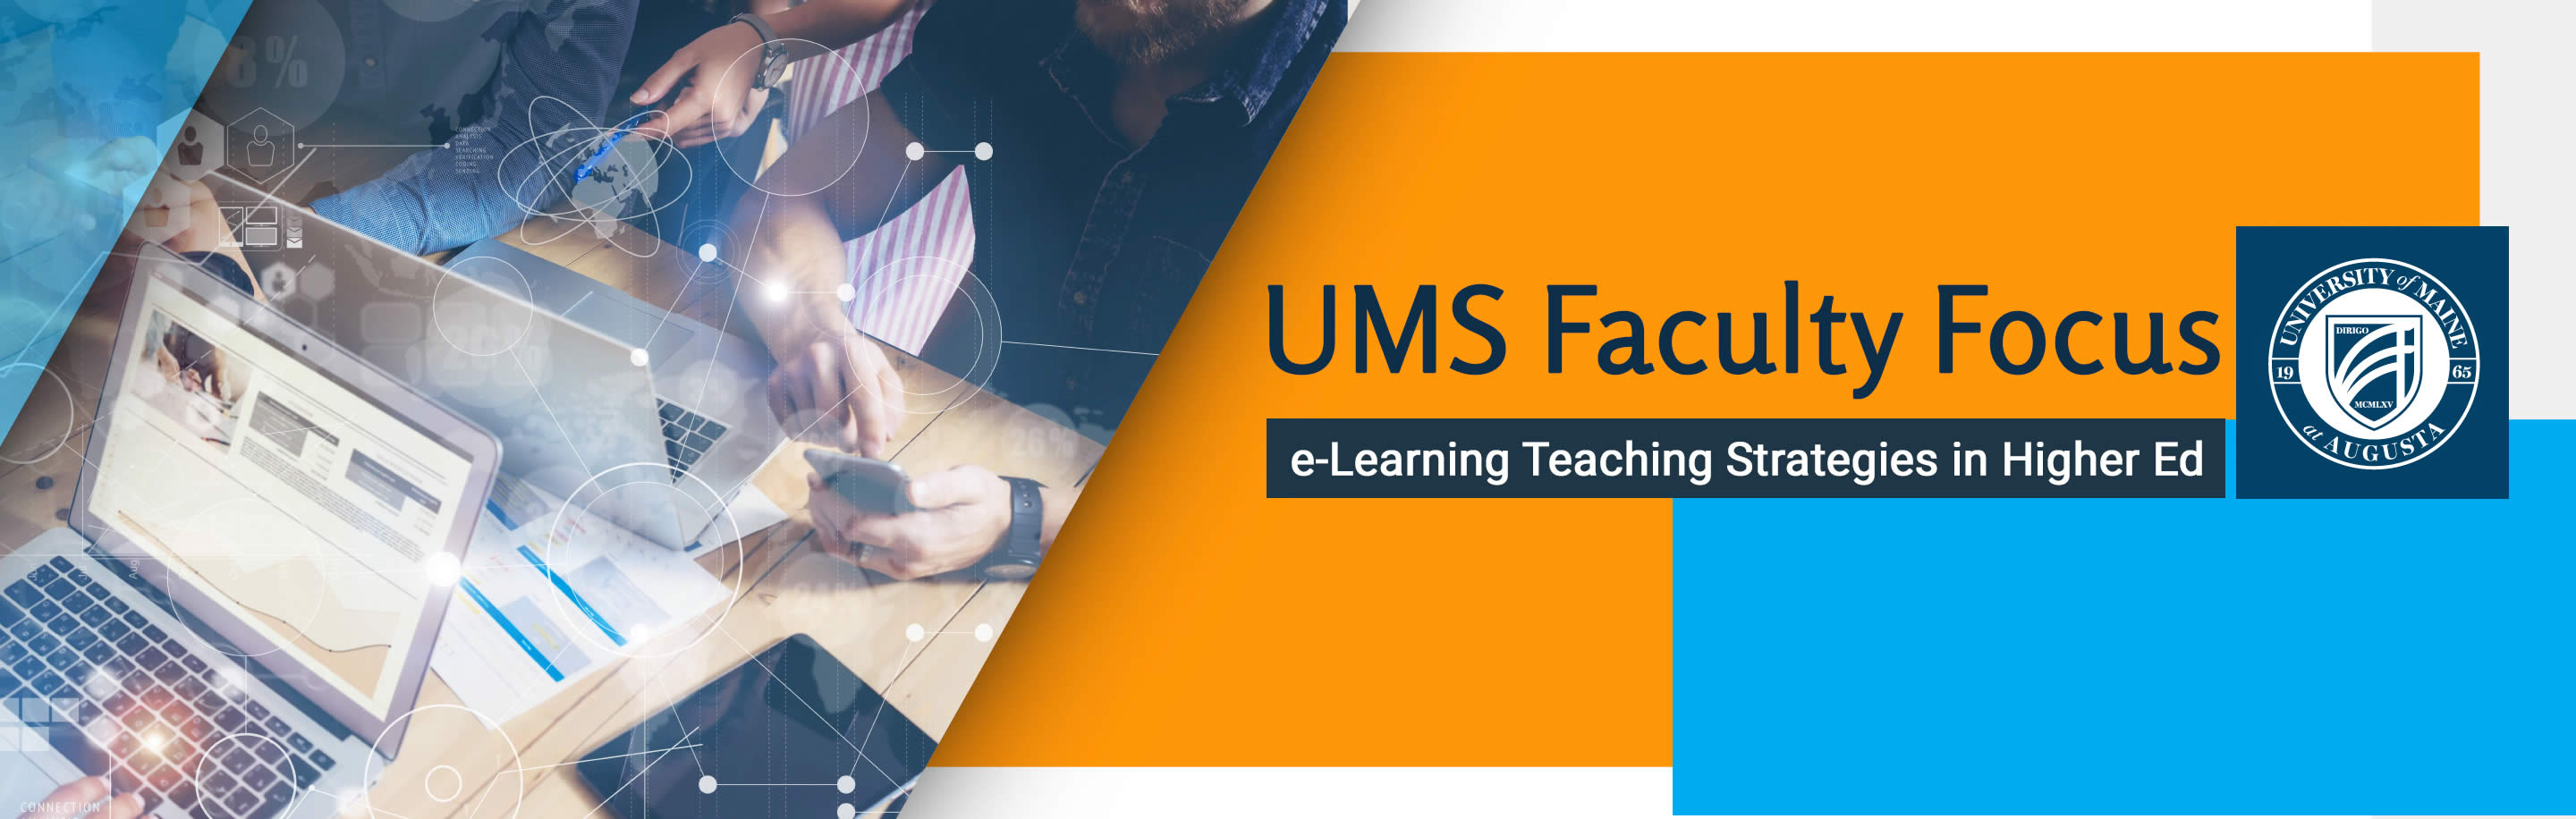 UMS Faculty Focus Blog